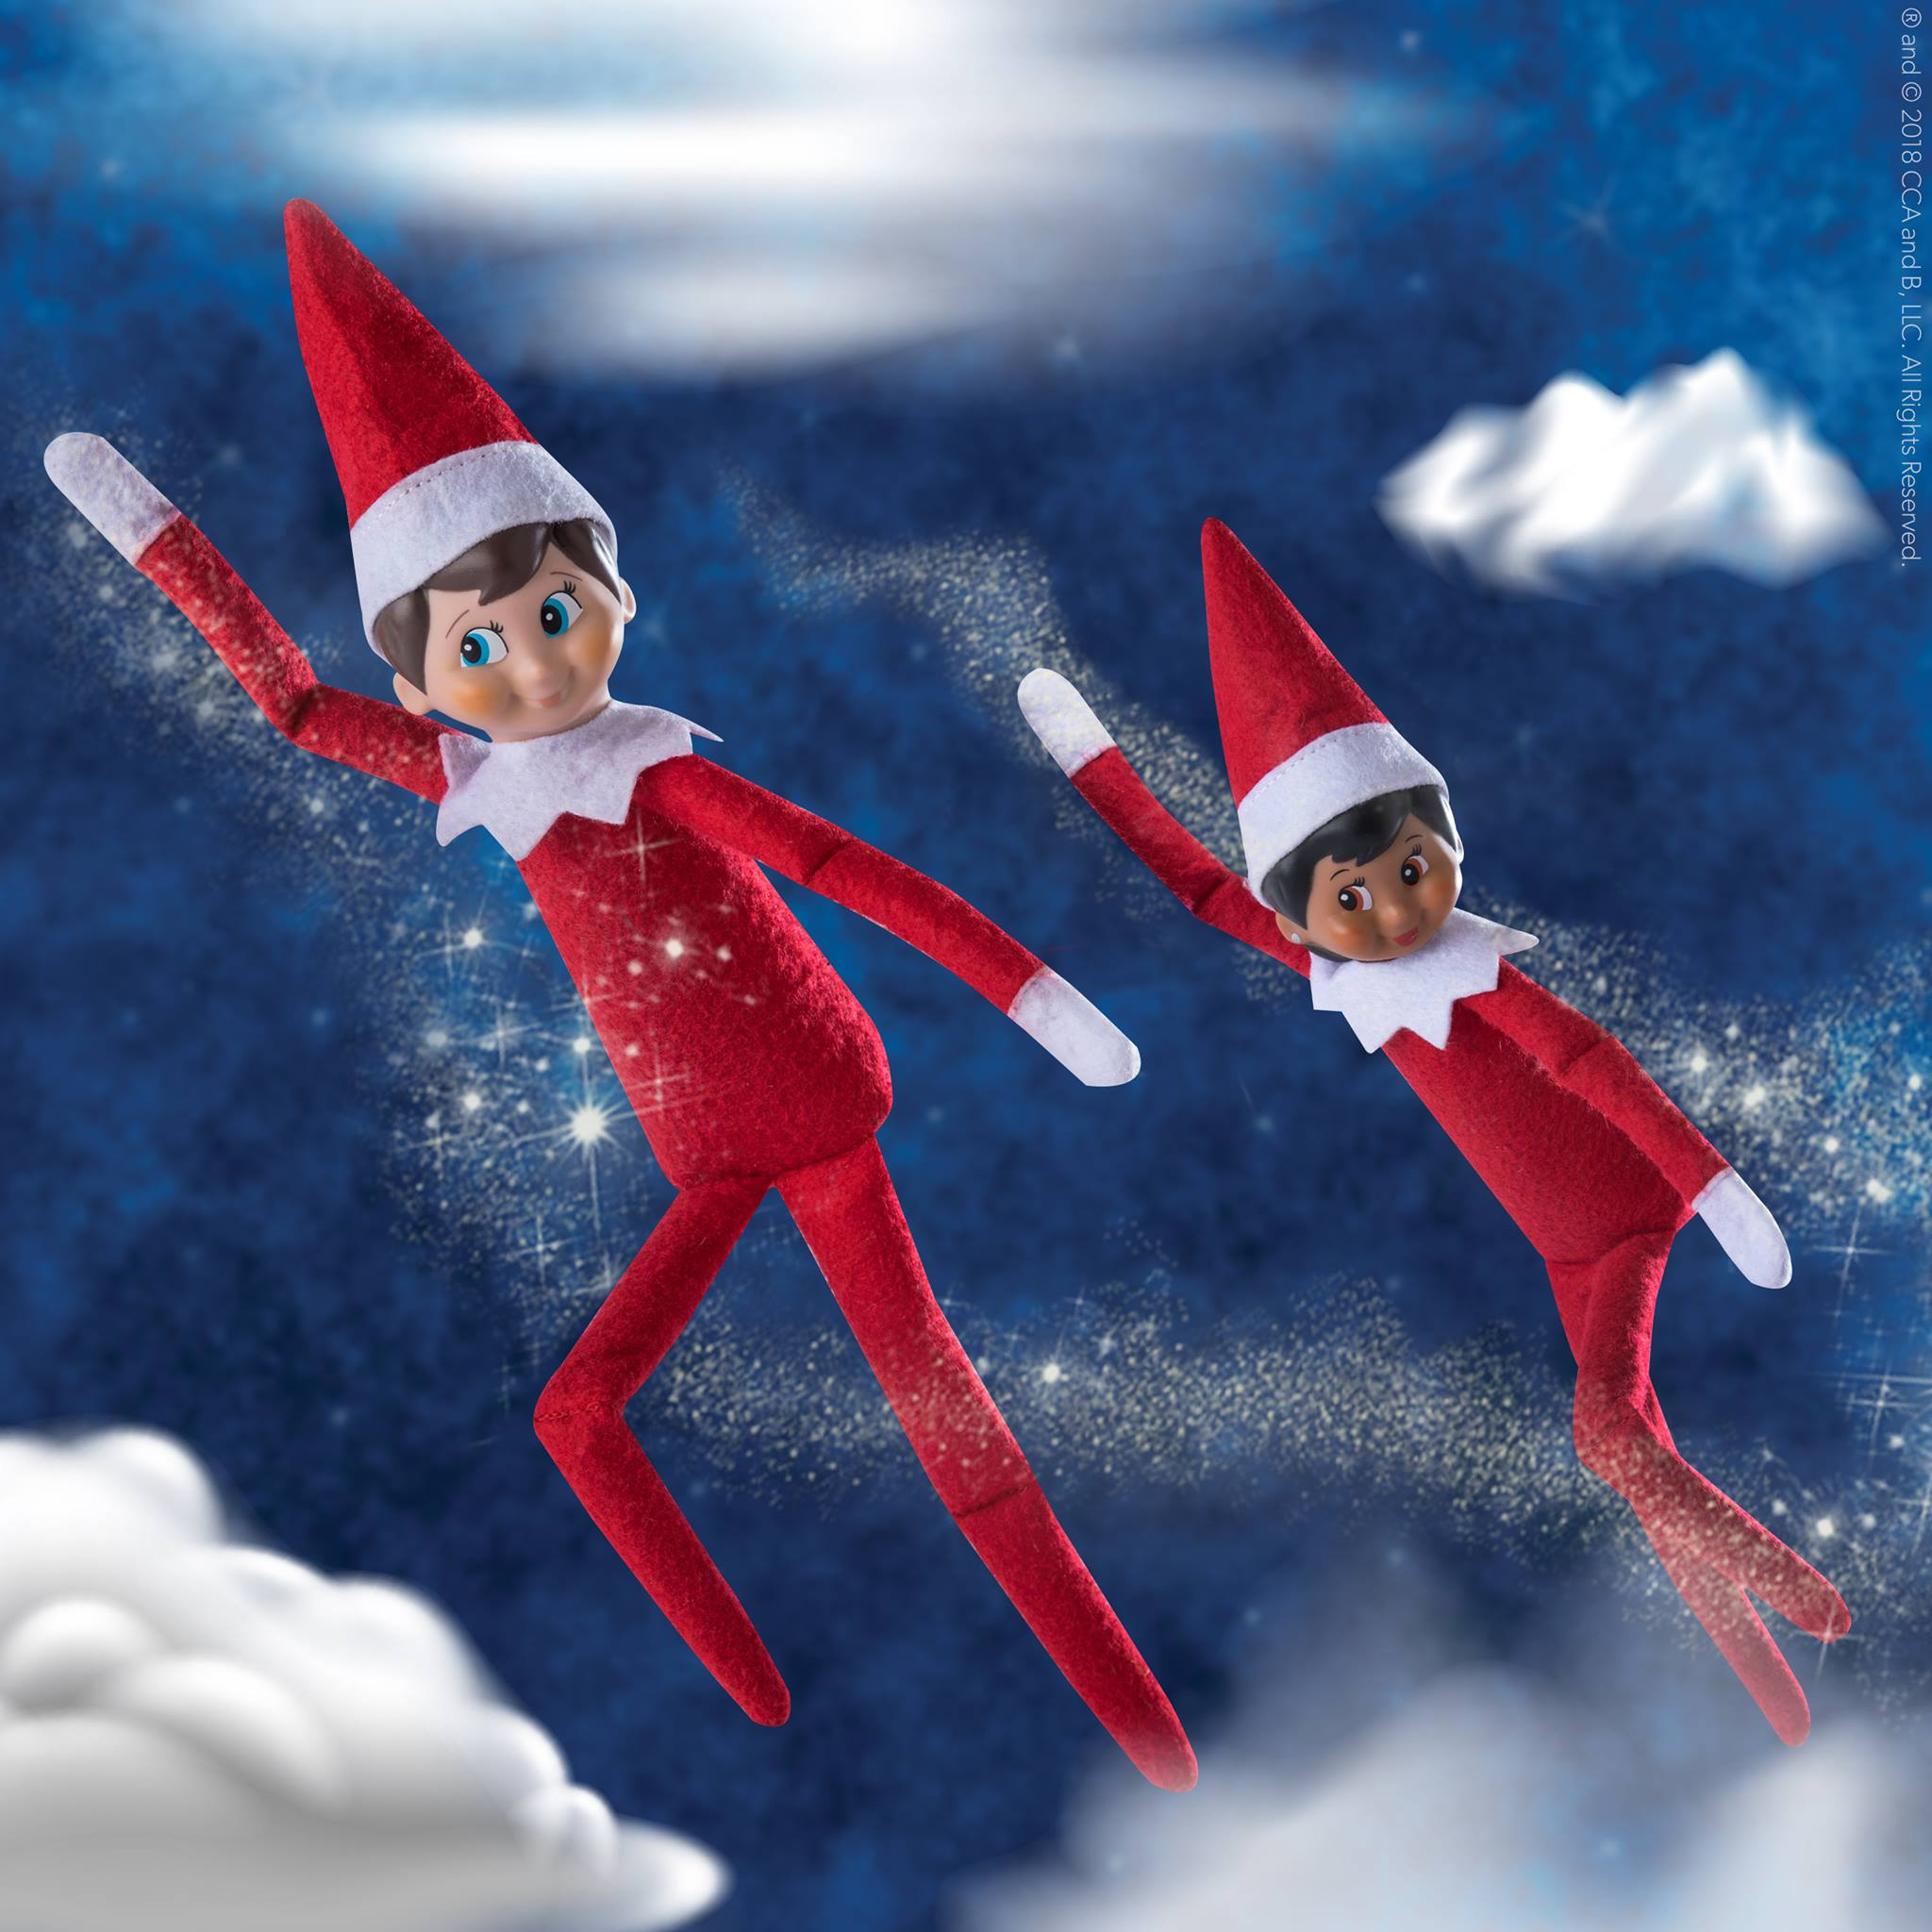 When Does Elf On The Shelf Come When Does Elf On The Shelf